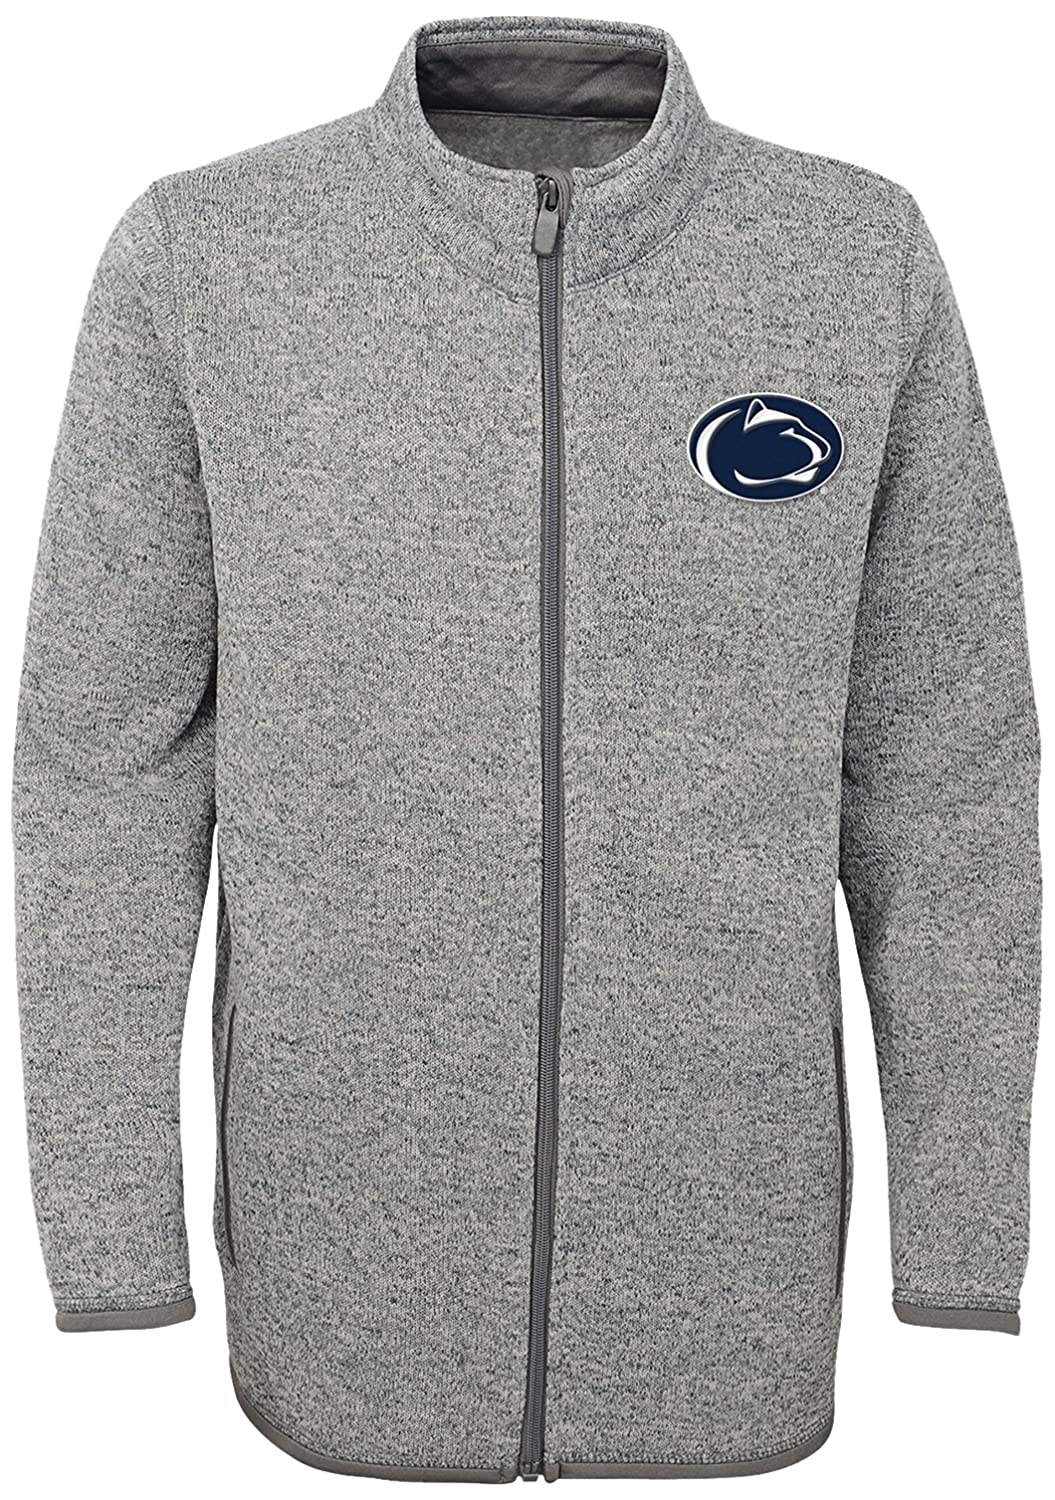 Heather Grey XLarge NCAA Mens Lima Full Zip Fleece Jacket